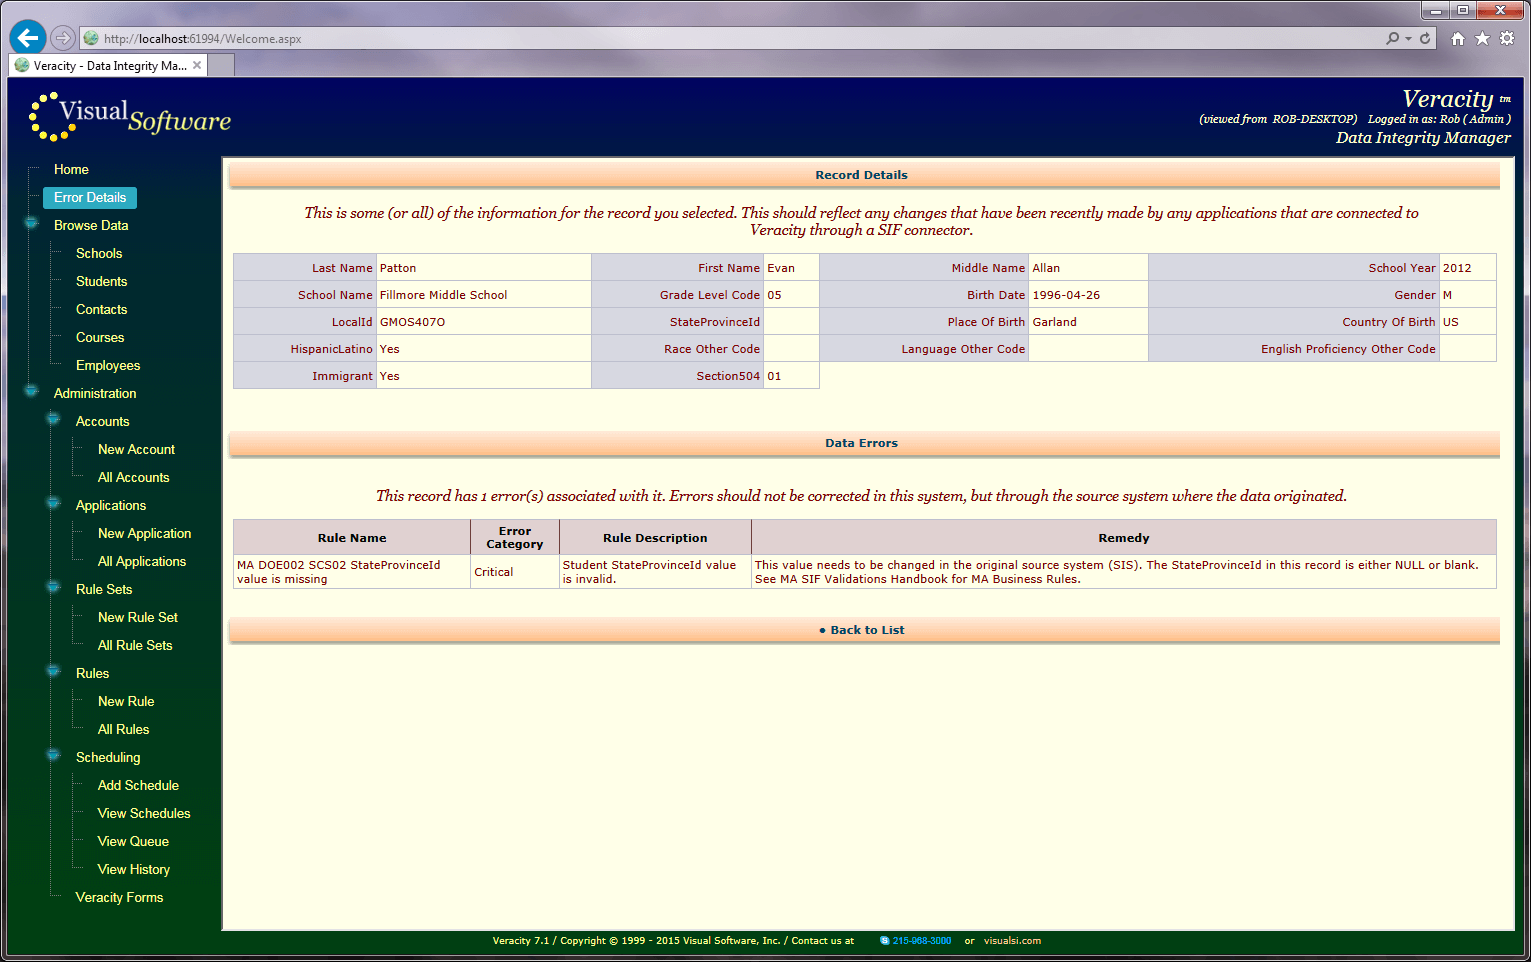 ErrorDetail - Veracity - Consolidation Agent and Integrity Manager